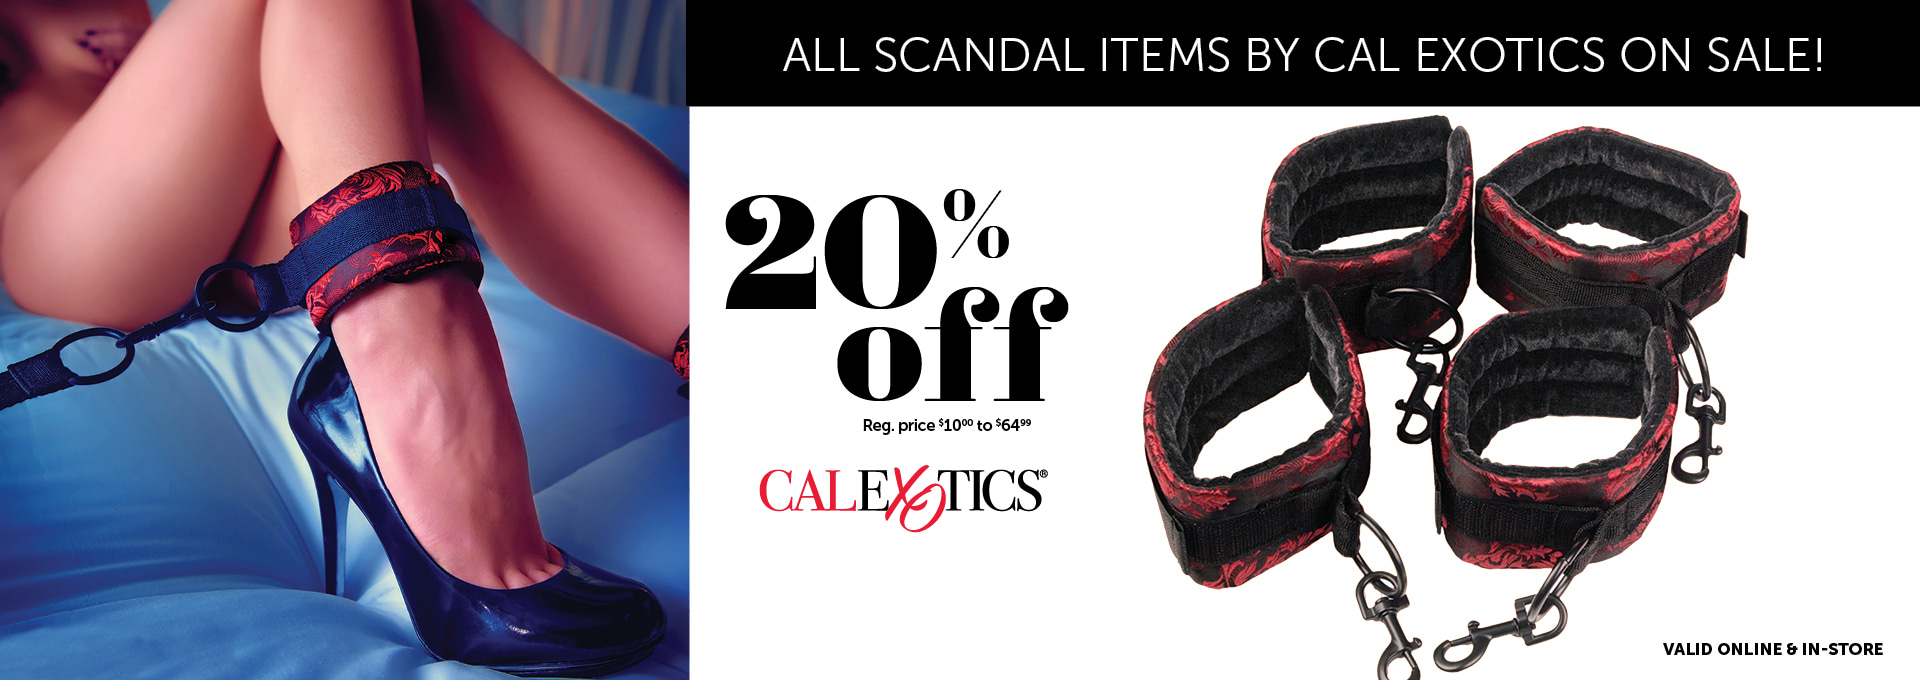 20% OFF Scandal by CalExotics